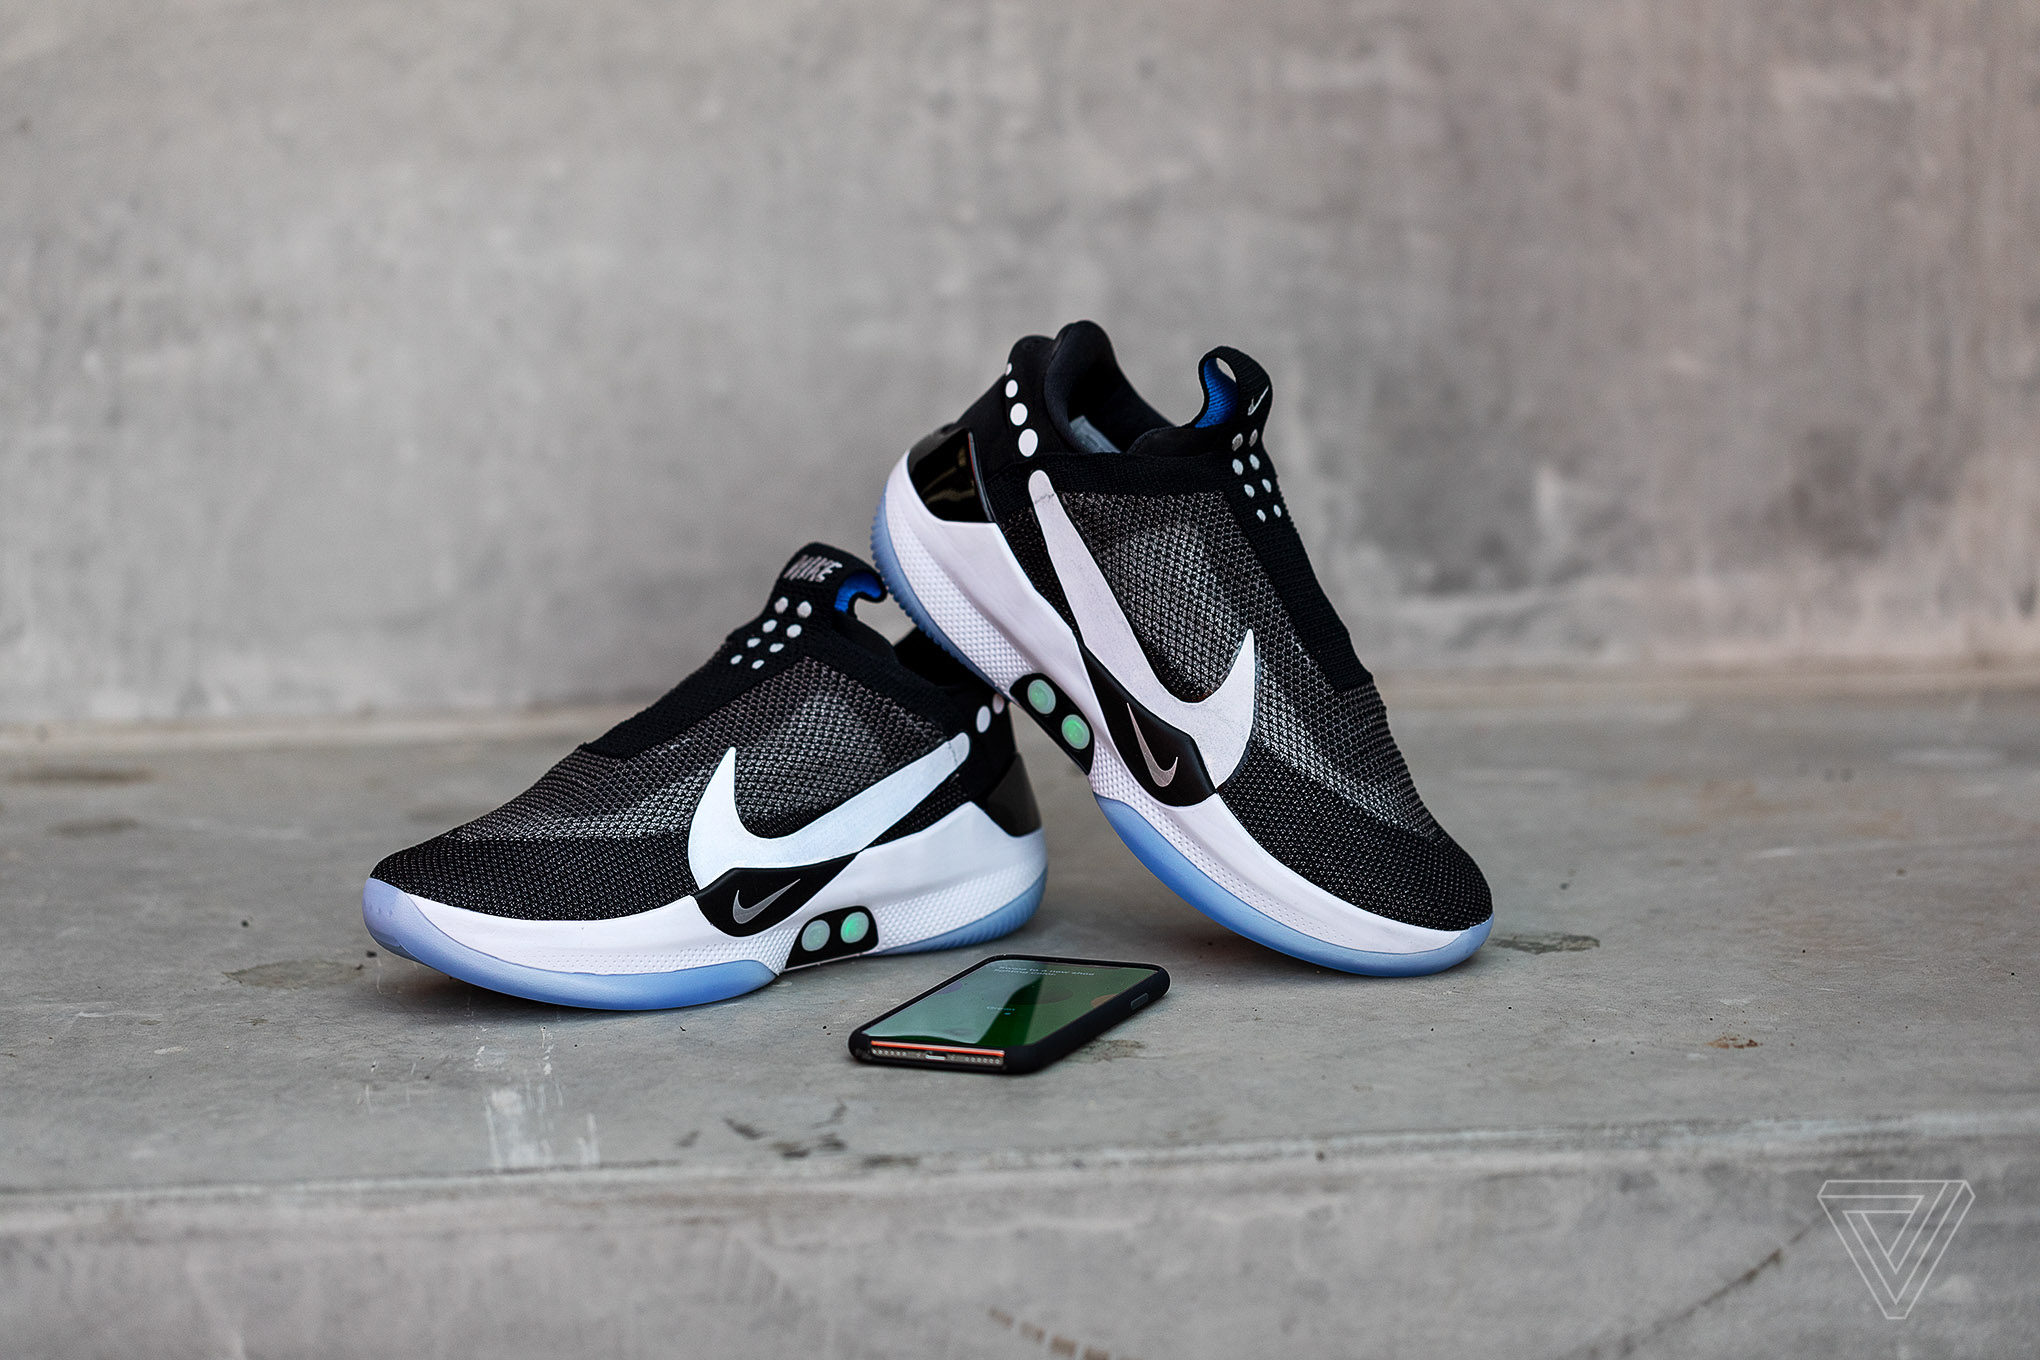 58a740ab9ddf2 Nike's Adapt BB self-lacing sneakers let you tie your shoes from an app -  The Verge